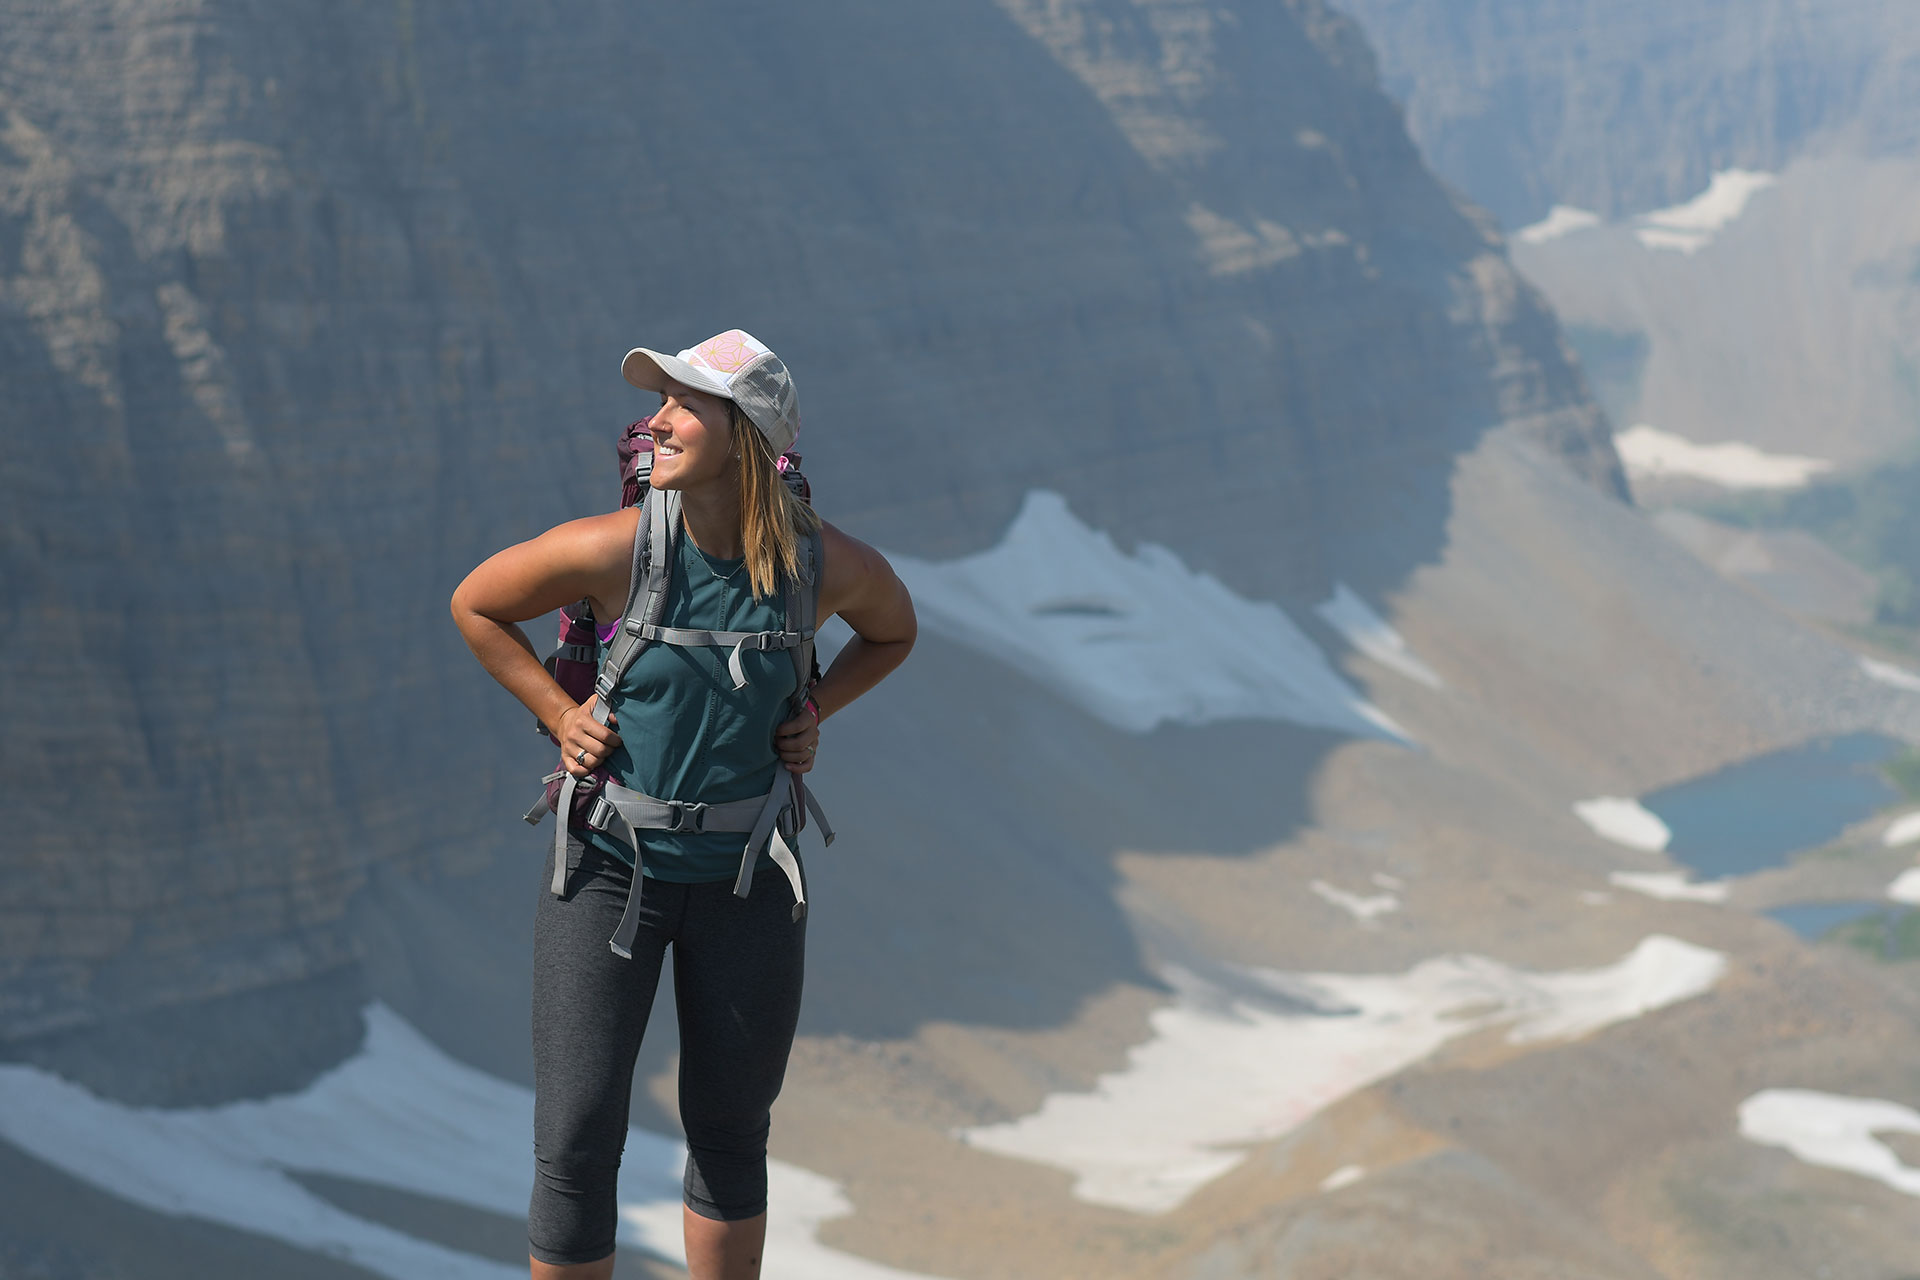 FEARLESS PURSUIT - FREESTYLE-SKIER TURNED LIFE COACH JEN HUDAK